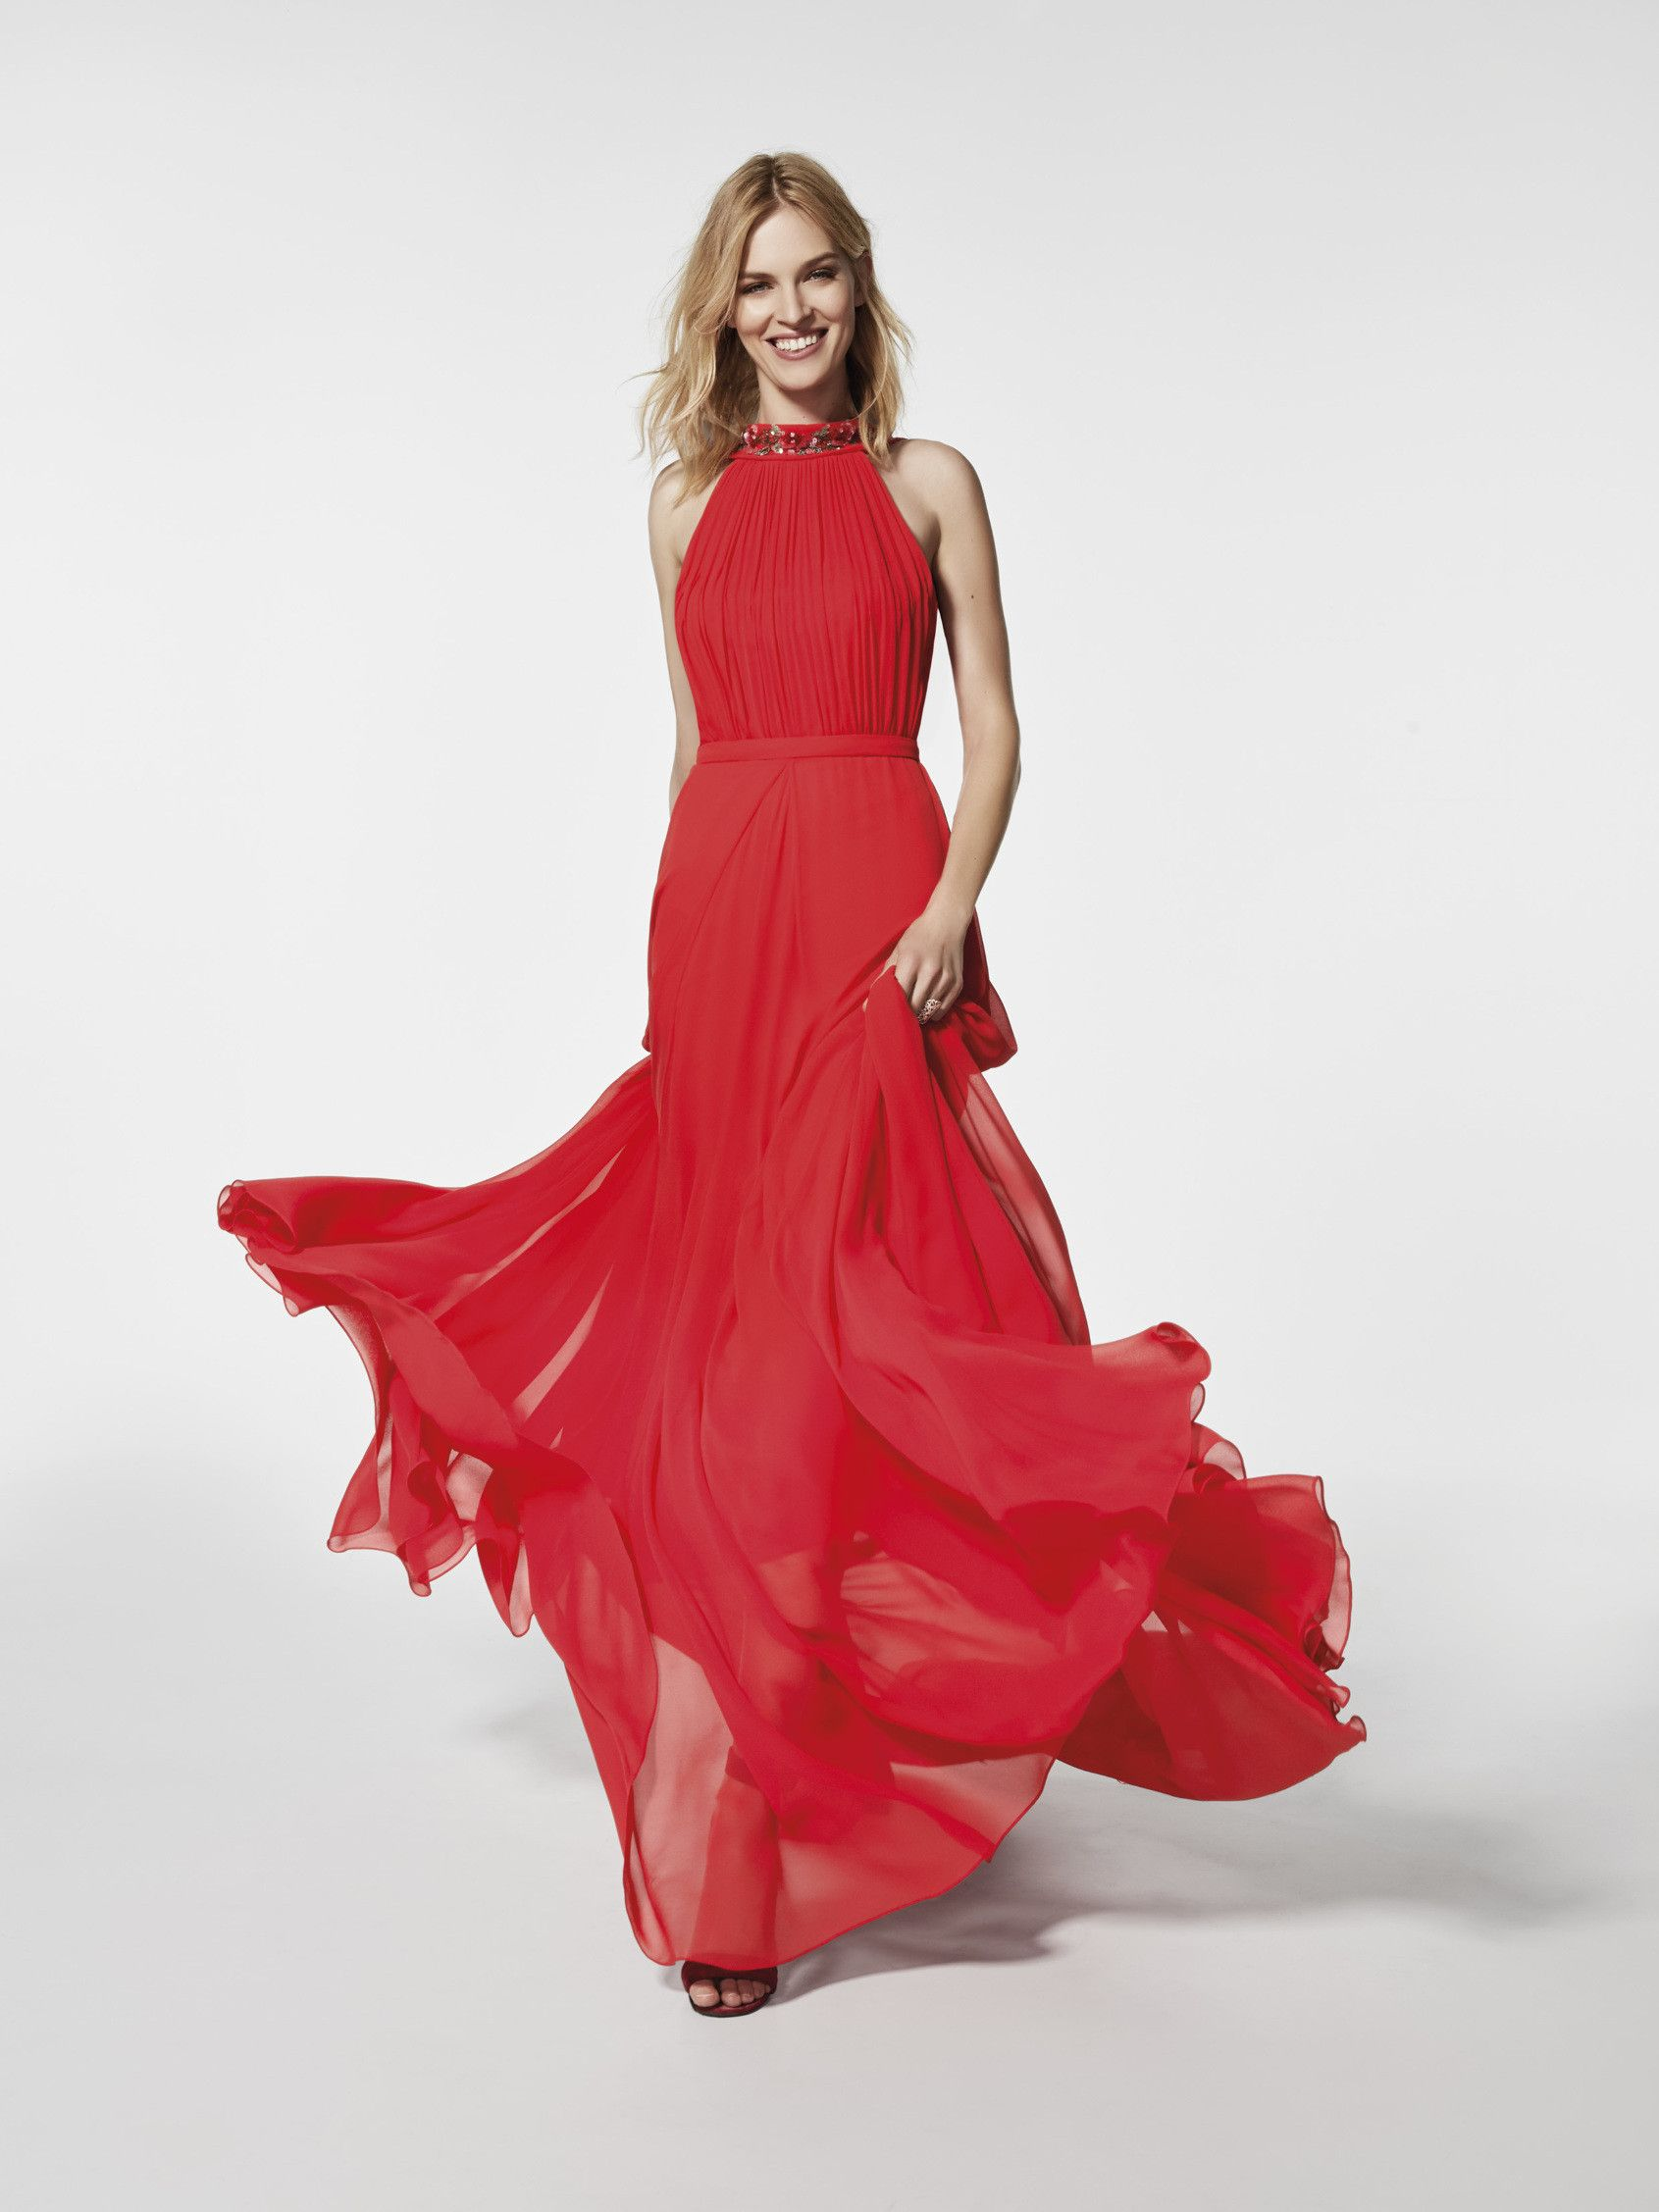 29a53cec7 Cocktail dress (GRAMA model) in red with a halter neckline at the front and  a V back. Long